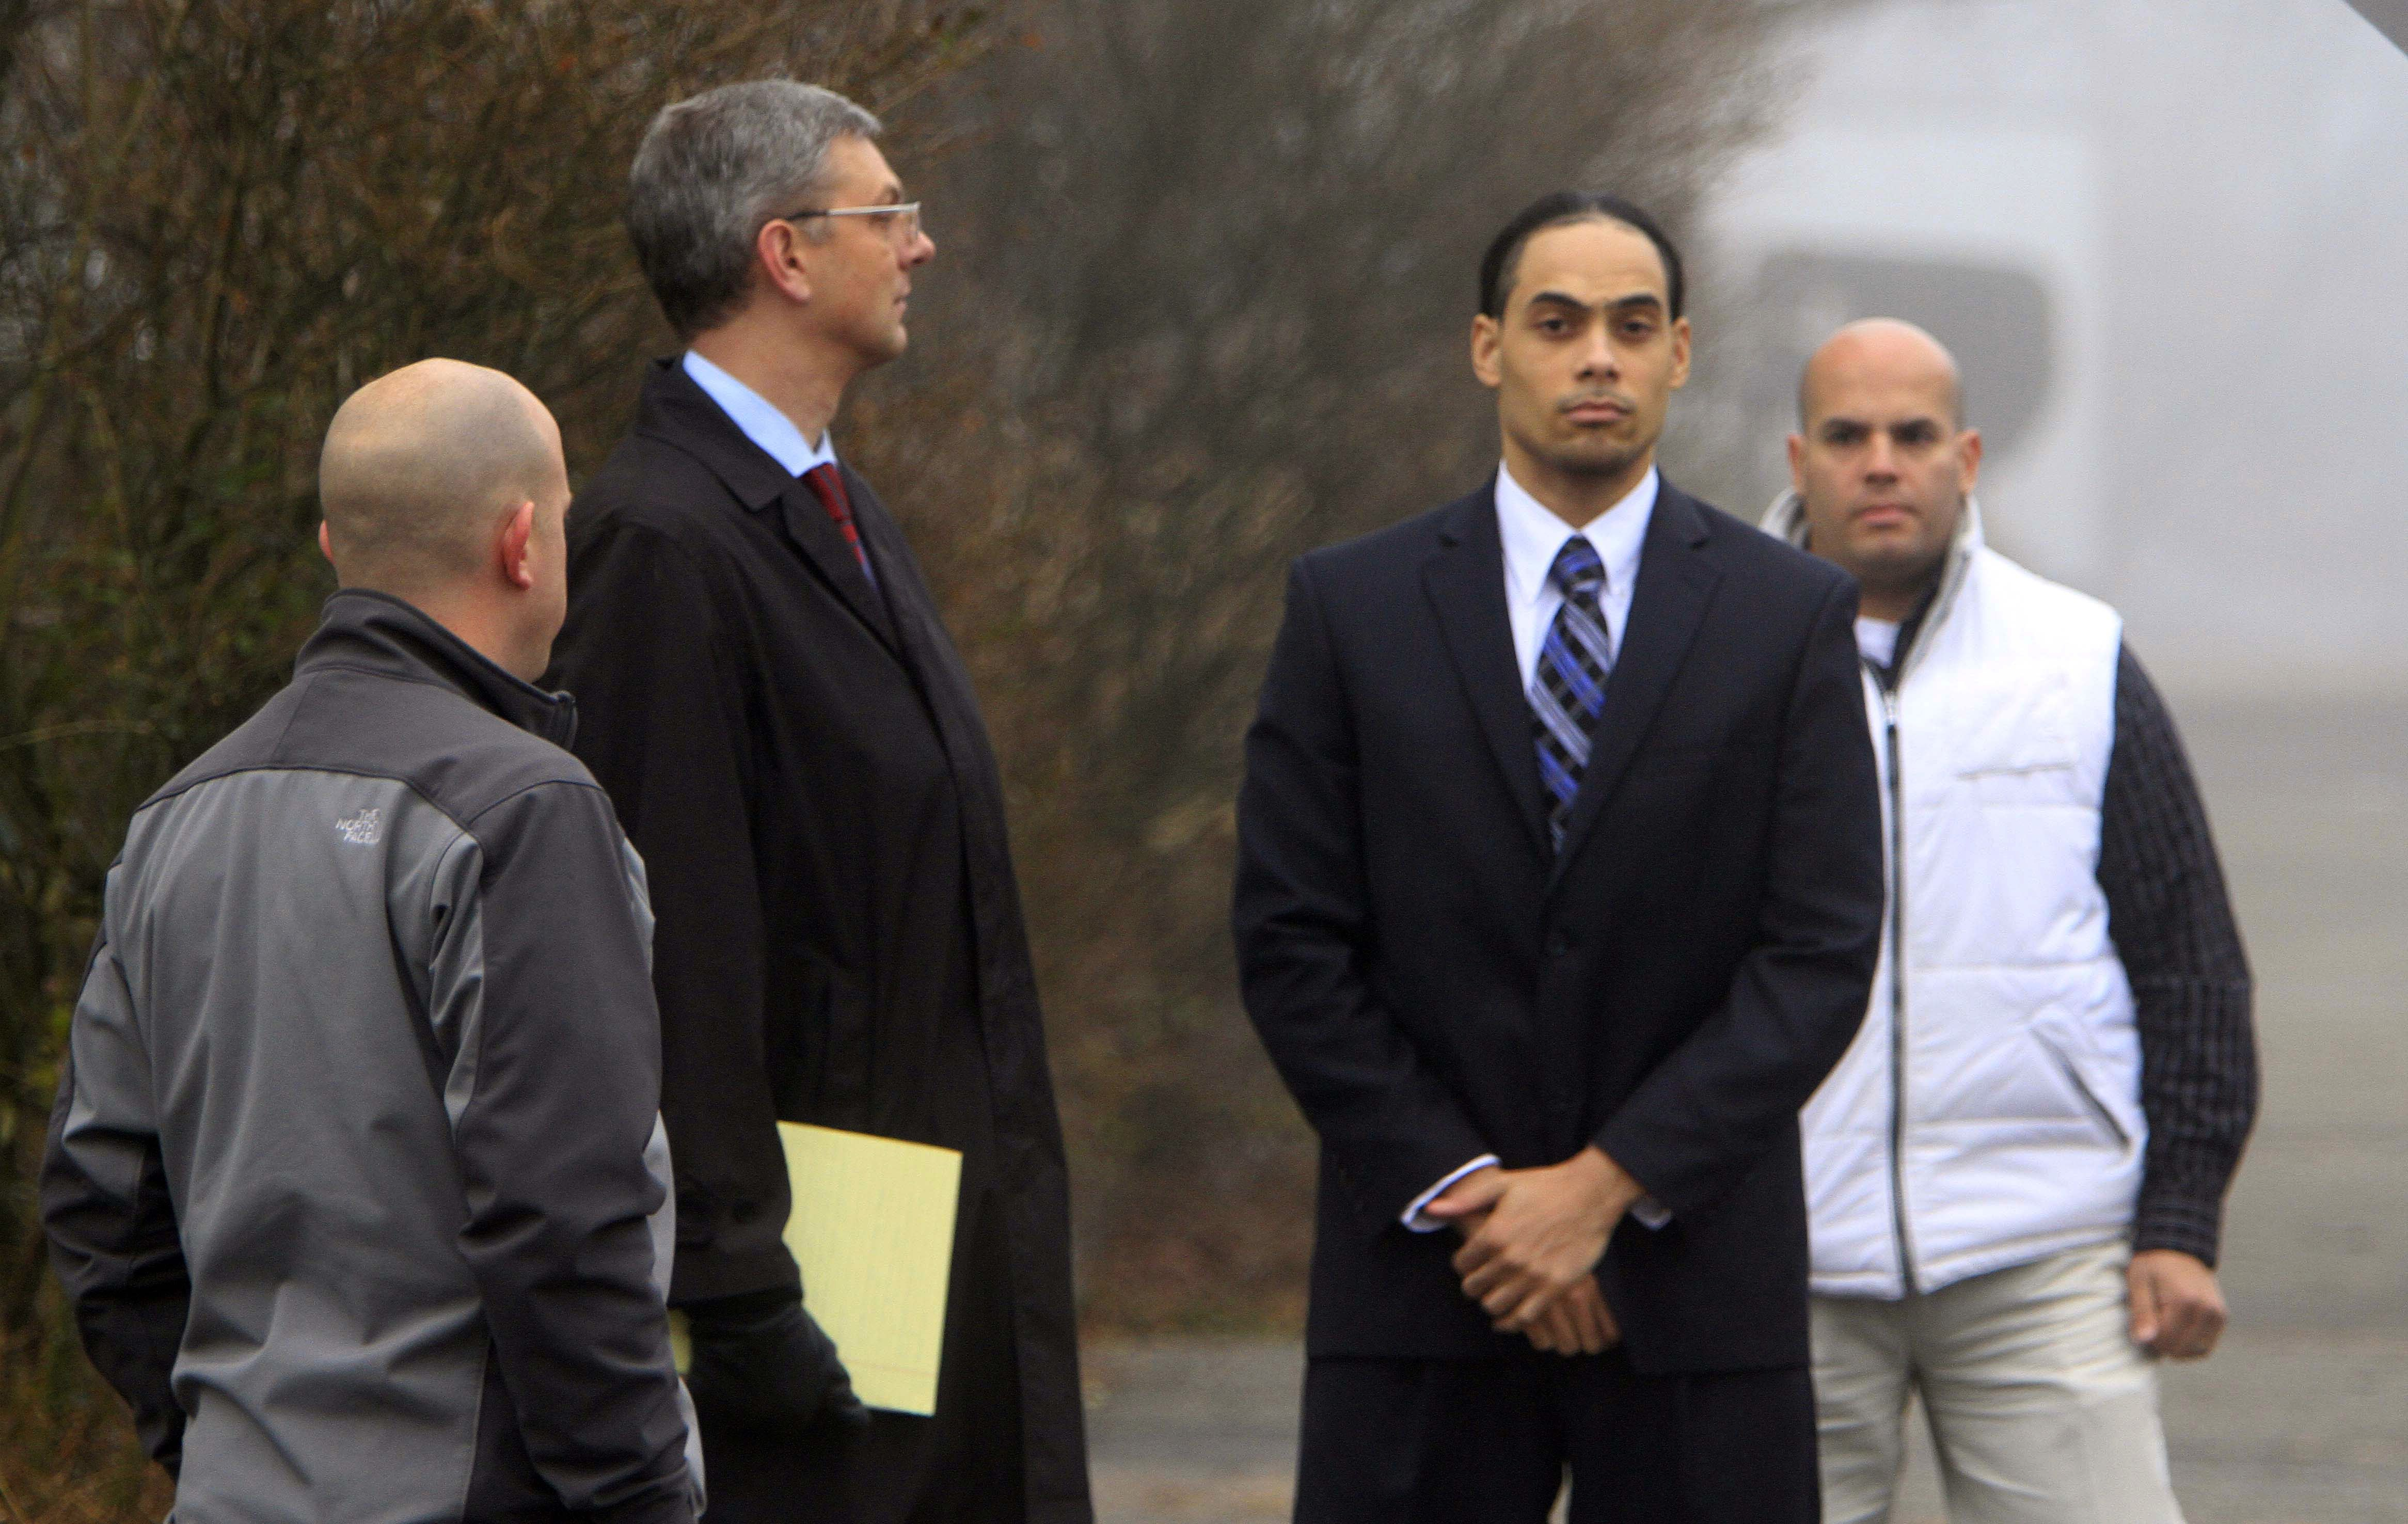 Accused N H  shooter not the man, lawyer says - The Boston Globe